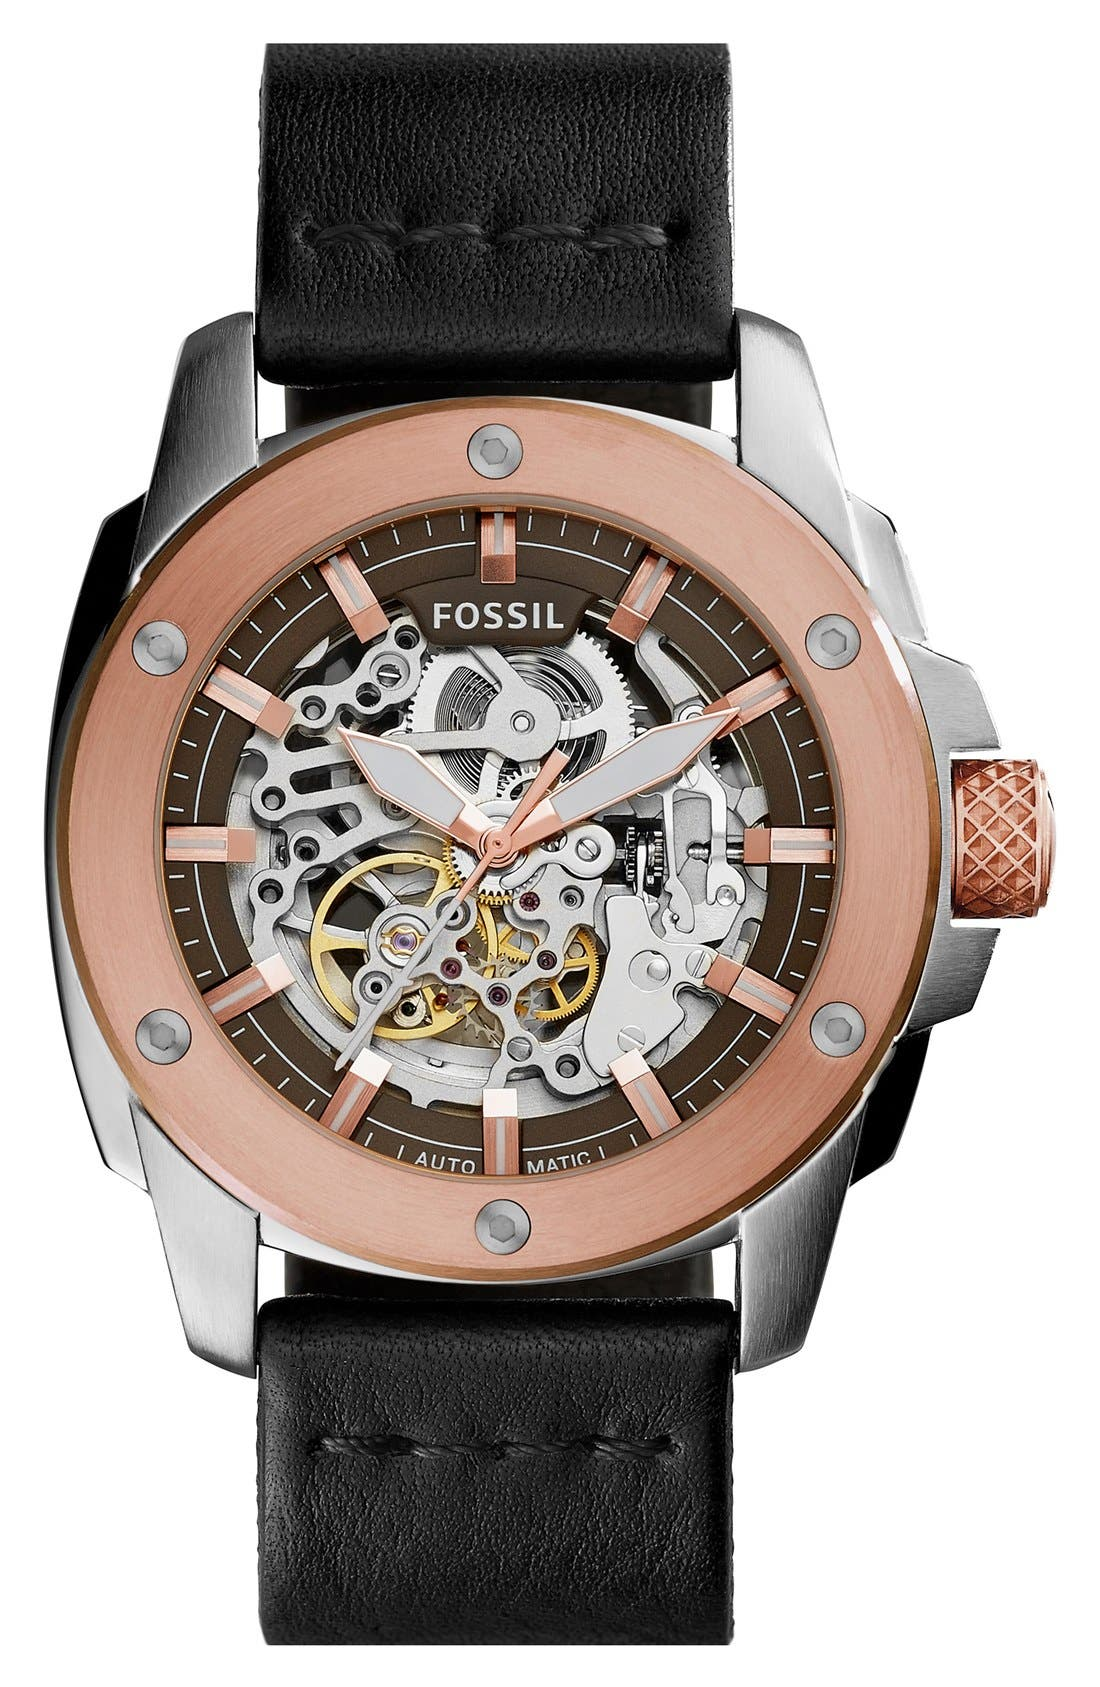 Main Image - Fossil 'Modern Machine' Skeleton Dial Leather Strap Watch, 50mm